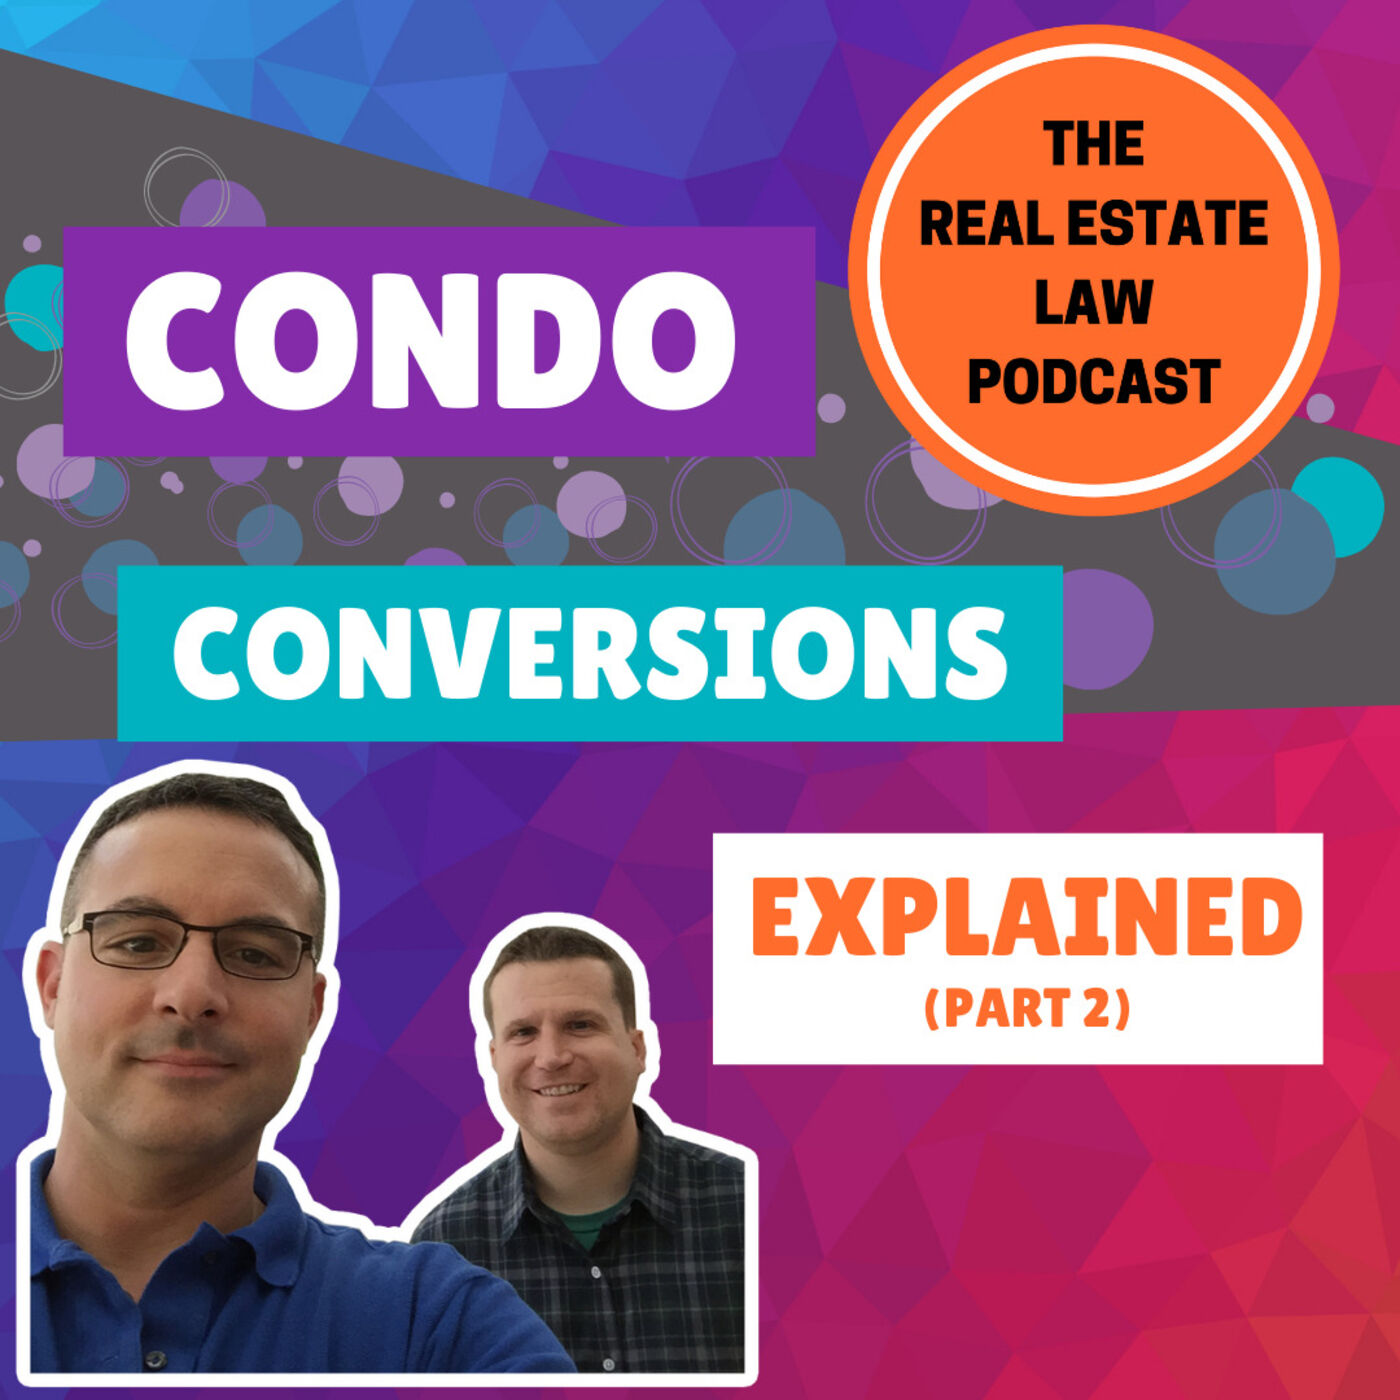 12 - Condo Conversions Explained - Everything You Need To Know, Part 2 of 2